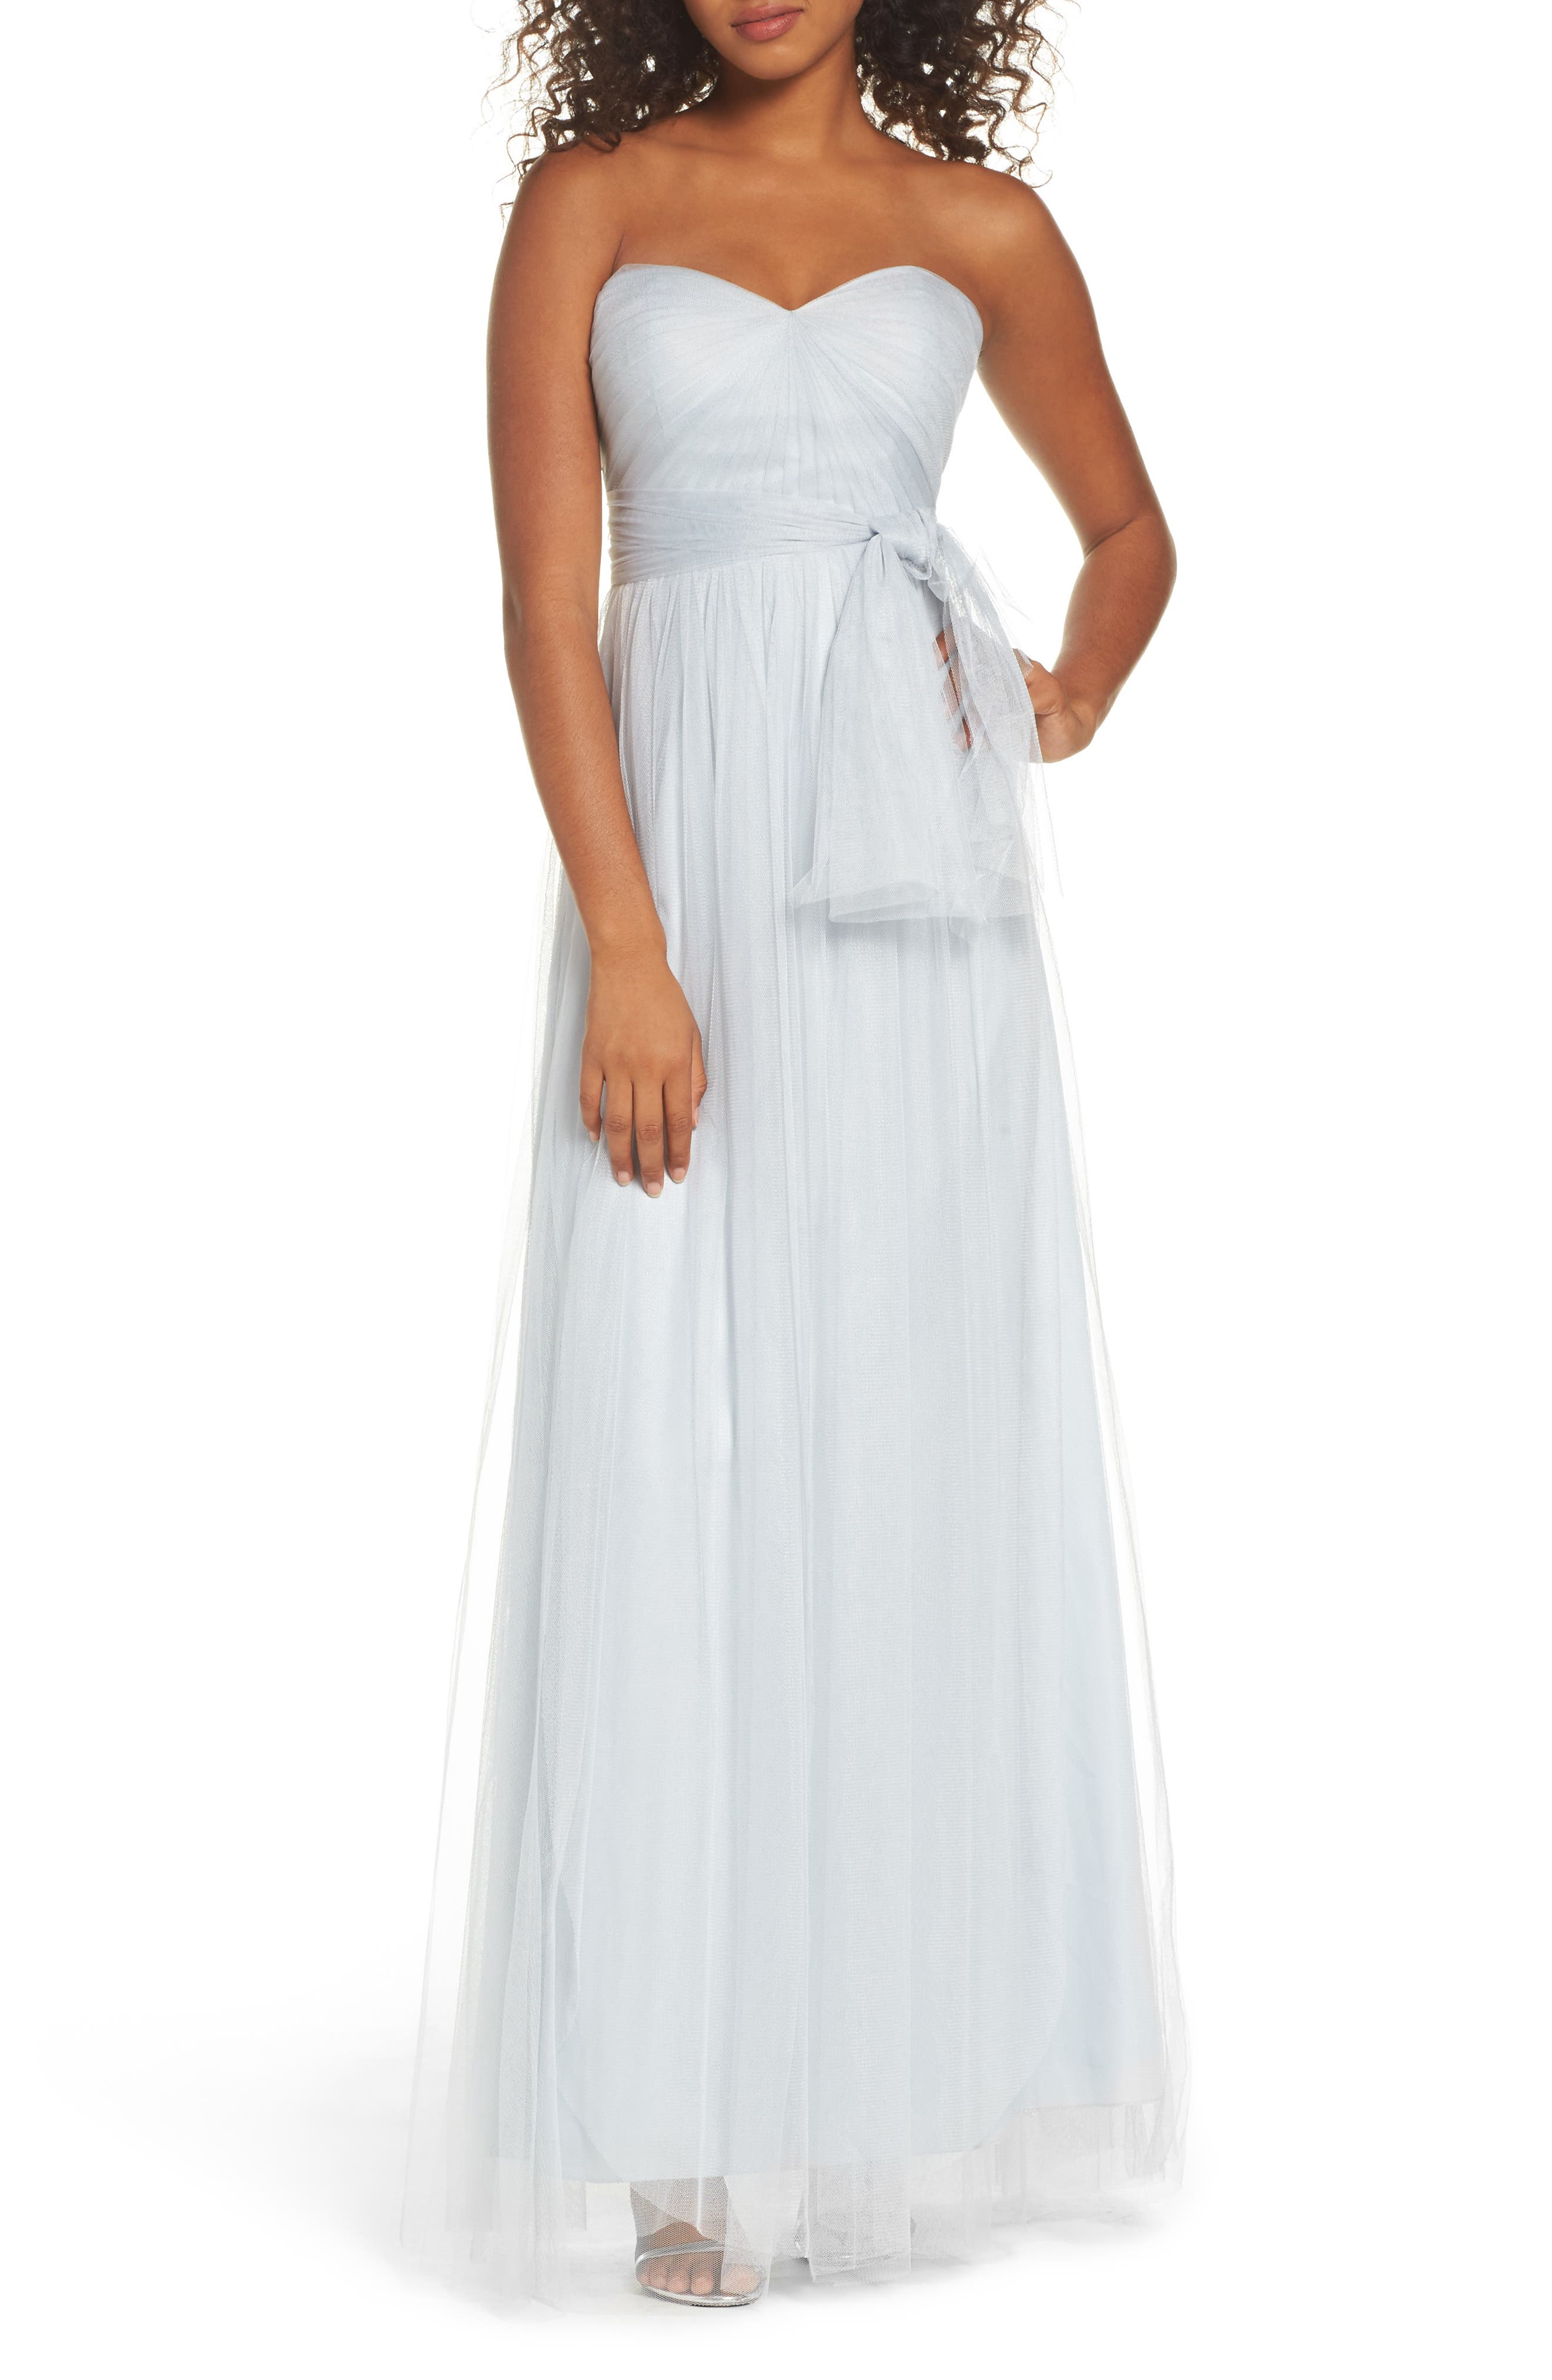 Annabelle Convertible Tulle Column Dress,                             Main thumbnail 6, color,